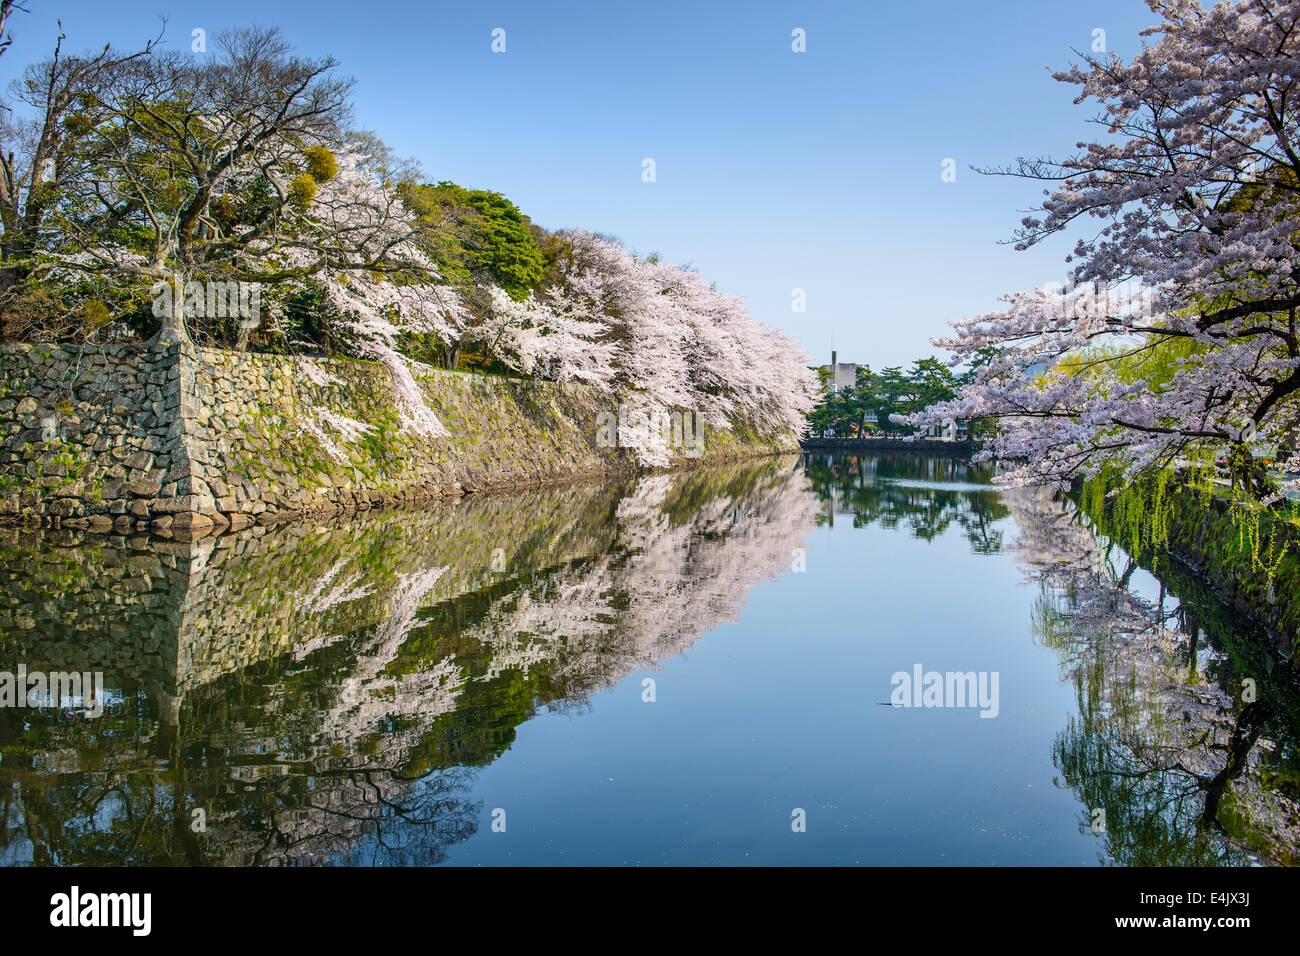 Castle outer moat during the spring season in Hikone, Japan. - Stock Image